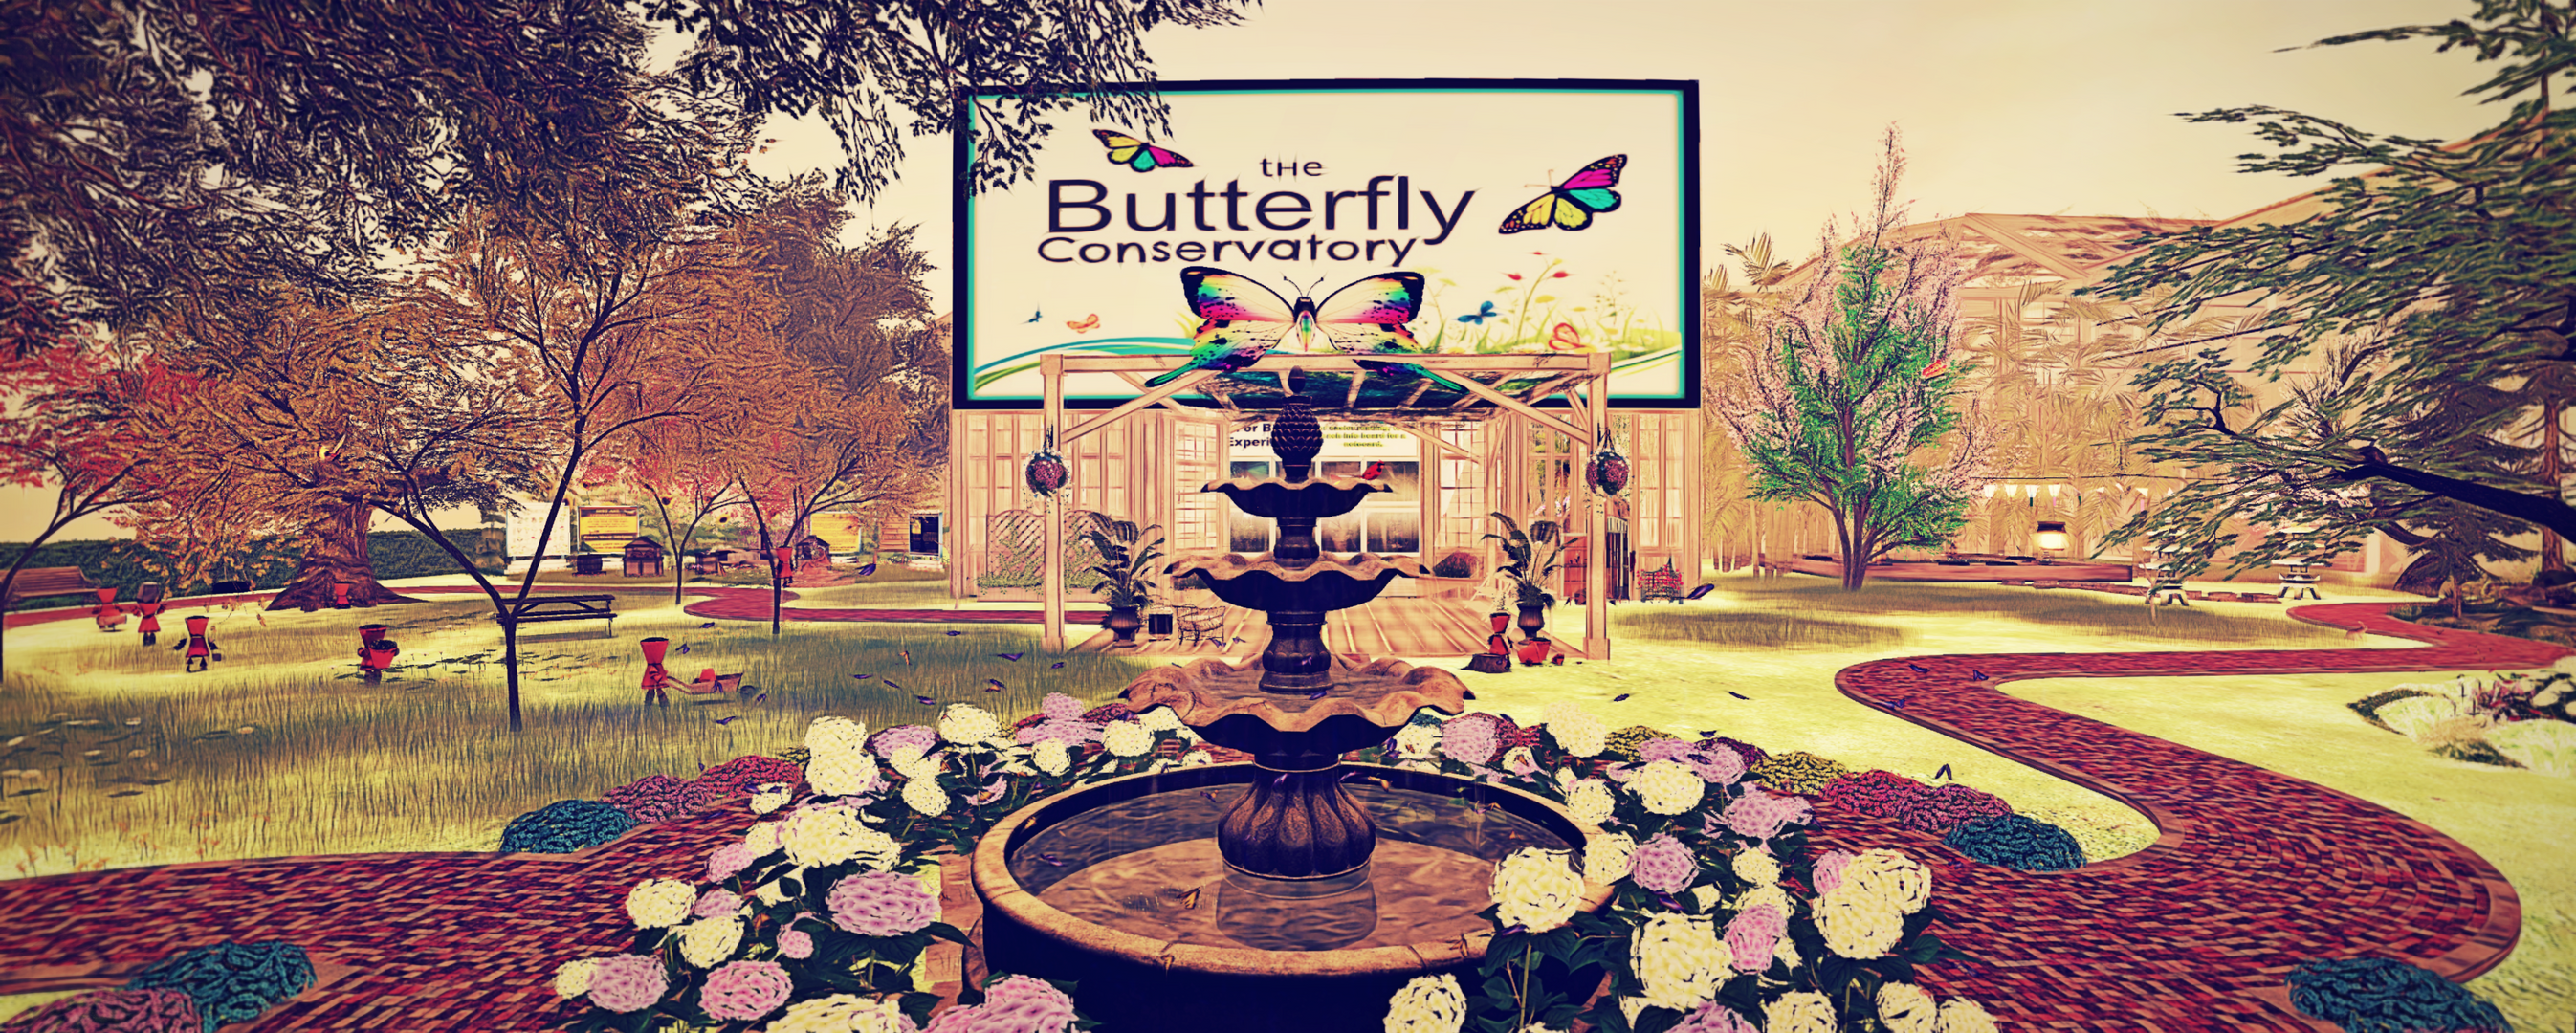 Merge Butterfly Conservatory 2021